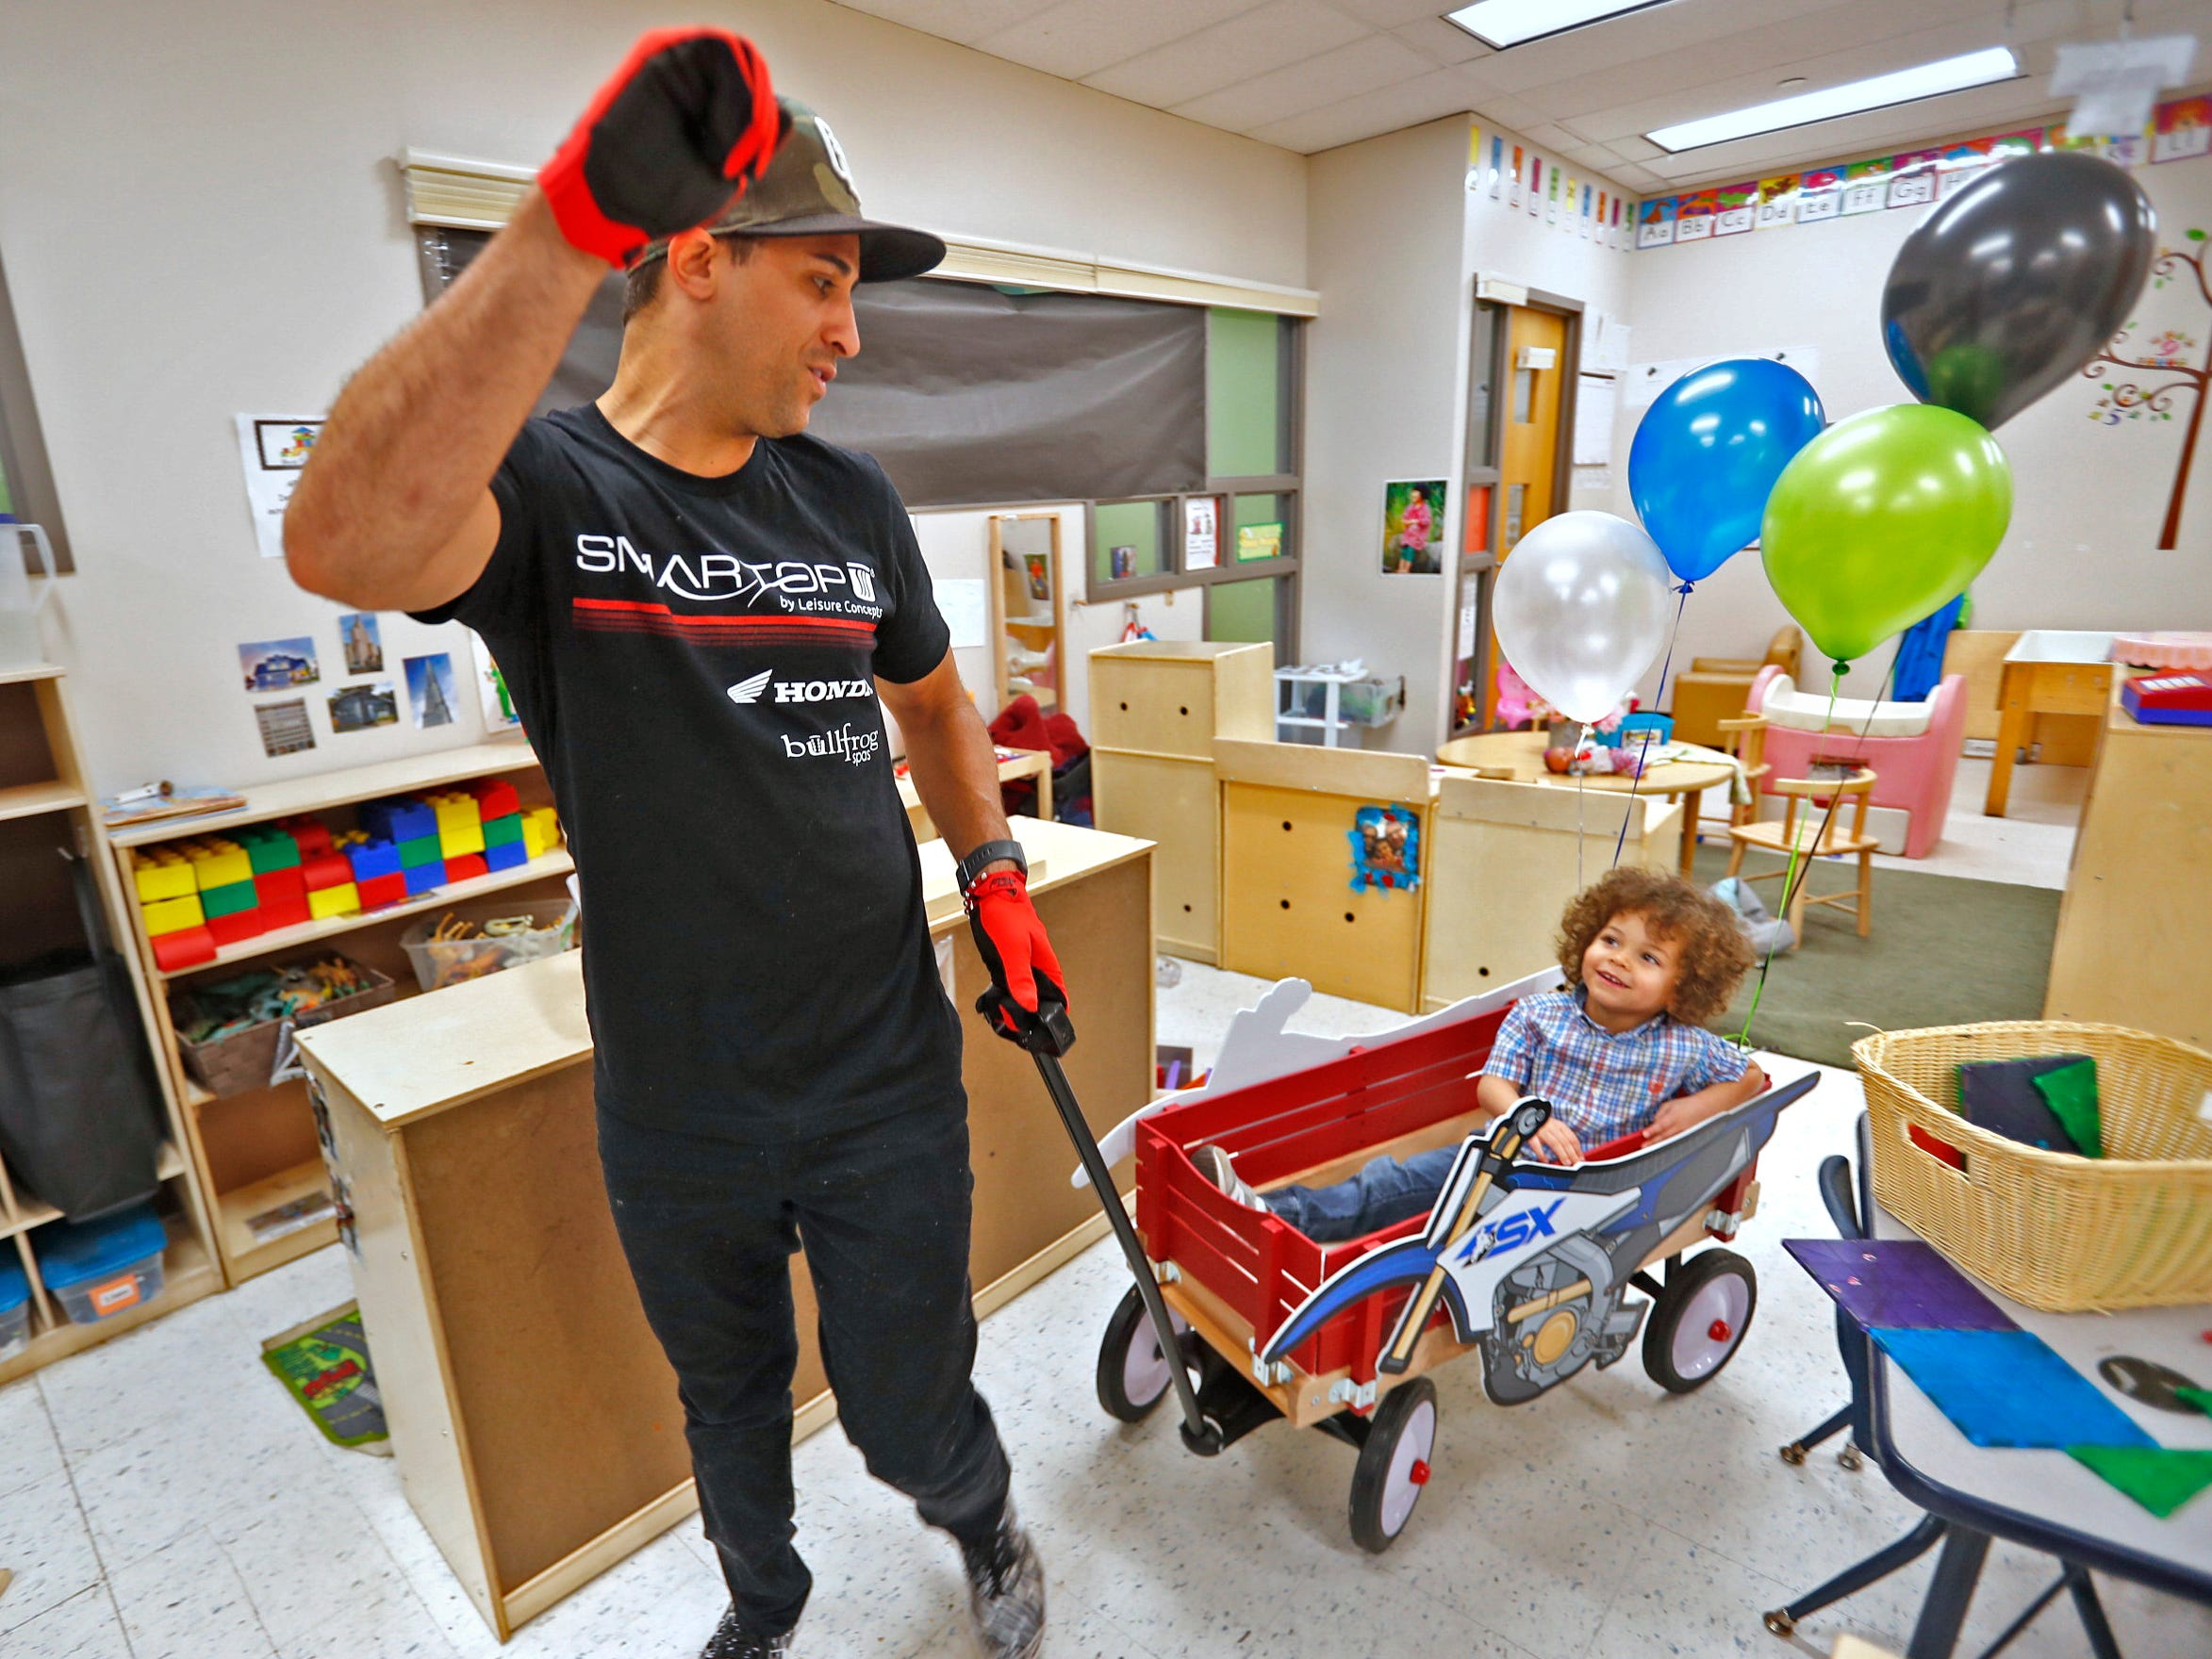 Dominic Bailey laughs while getting a wagon ride from Supercross racer Mike Alessi visiting with kids at Day Early Learning Center, Thursday, March 14, 2019.  Alessi provided Supercross rider jerseys and hats for the kids and gave wagon rides, on a break before the upcoming Supercross race.